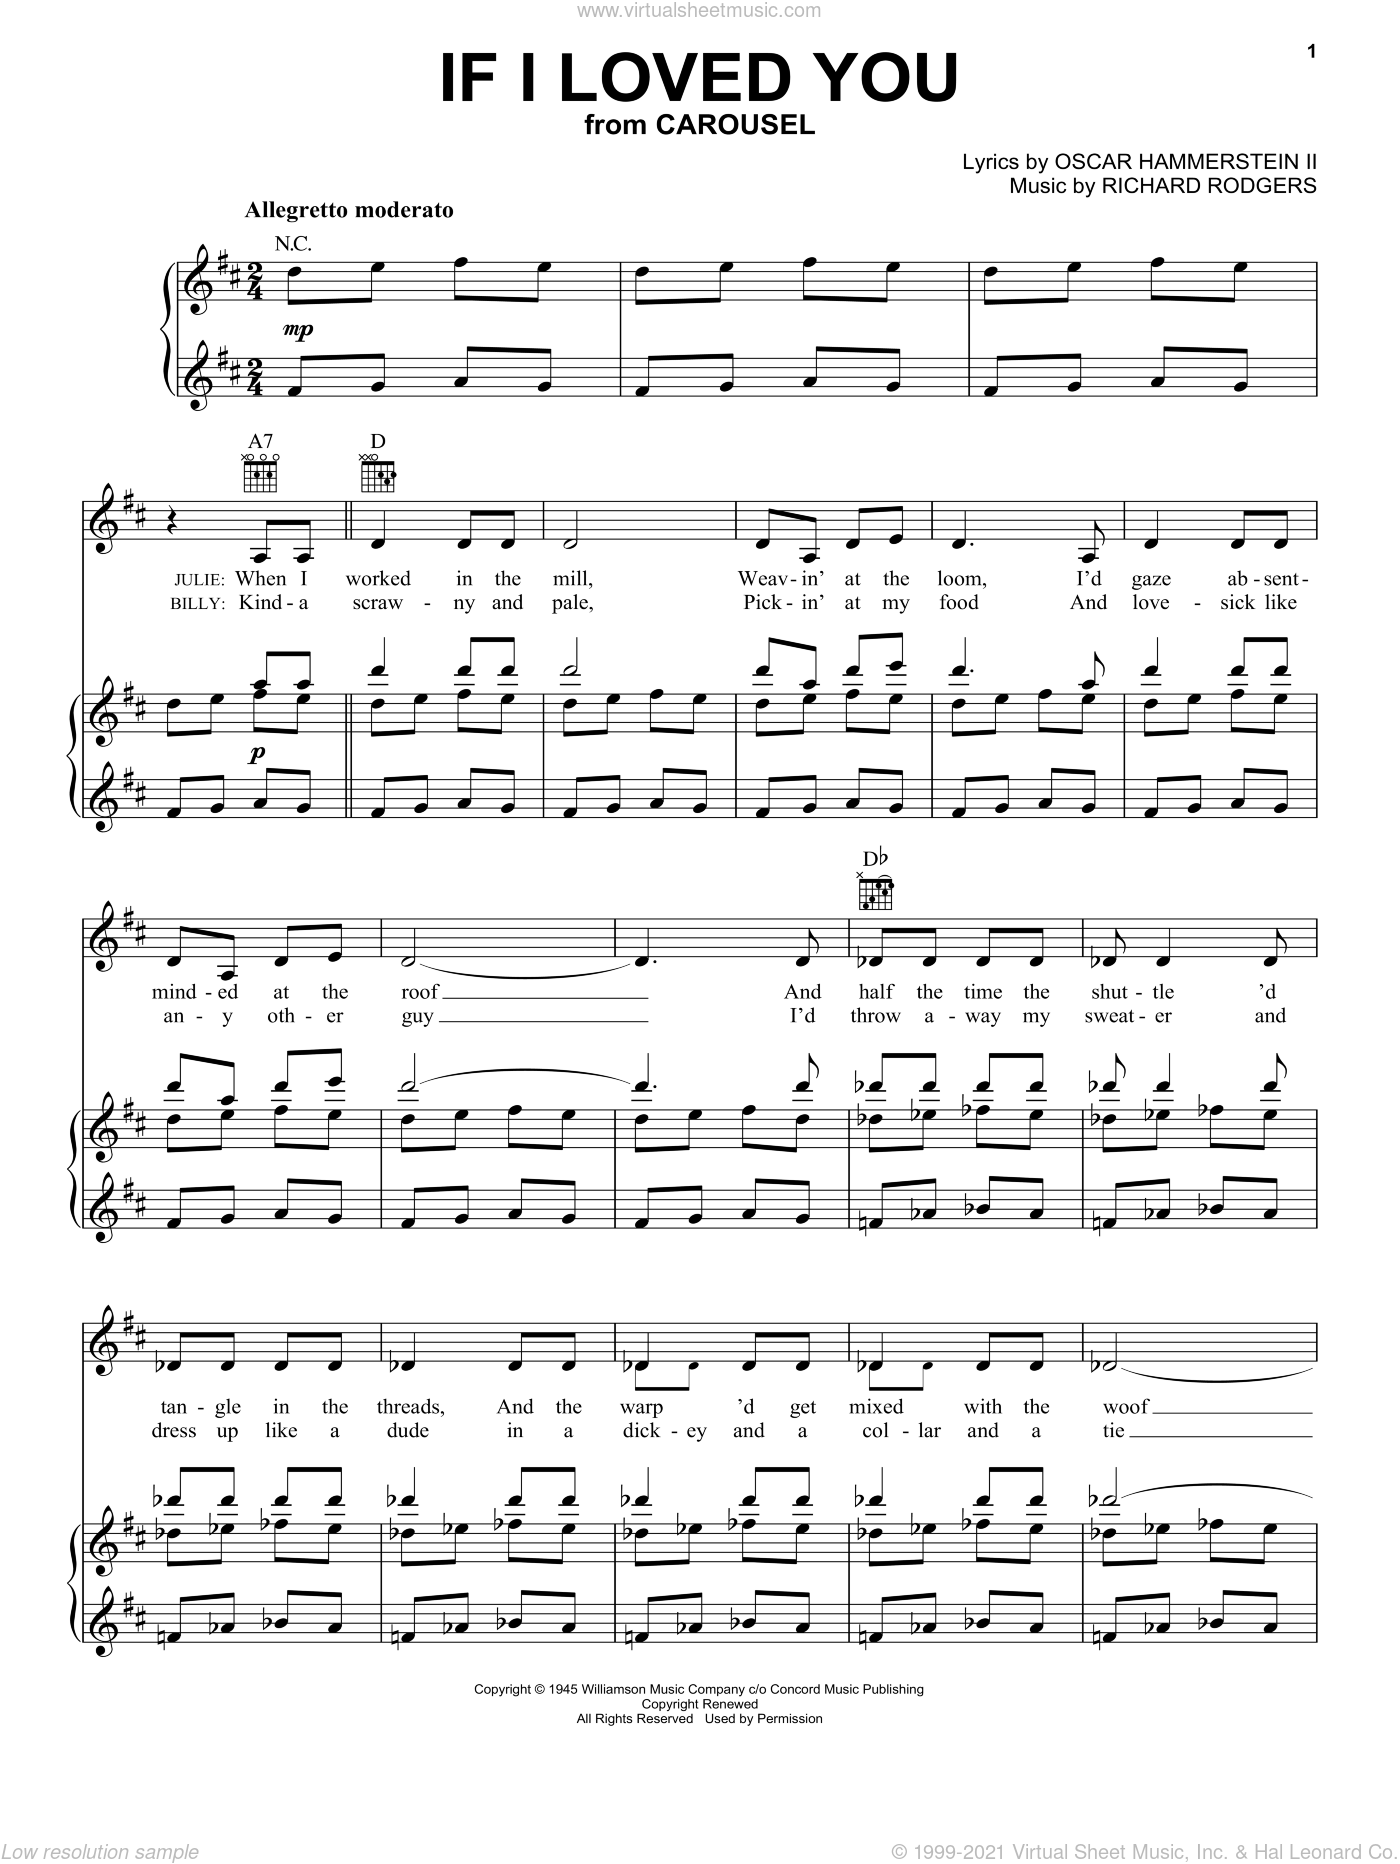 If I Loved You sheet music for voice, piano or guitar by Richard Rodgers